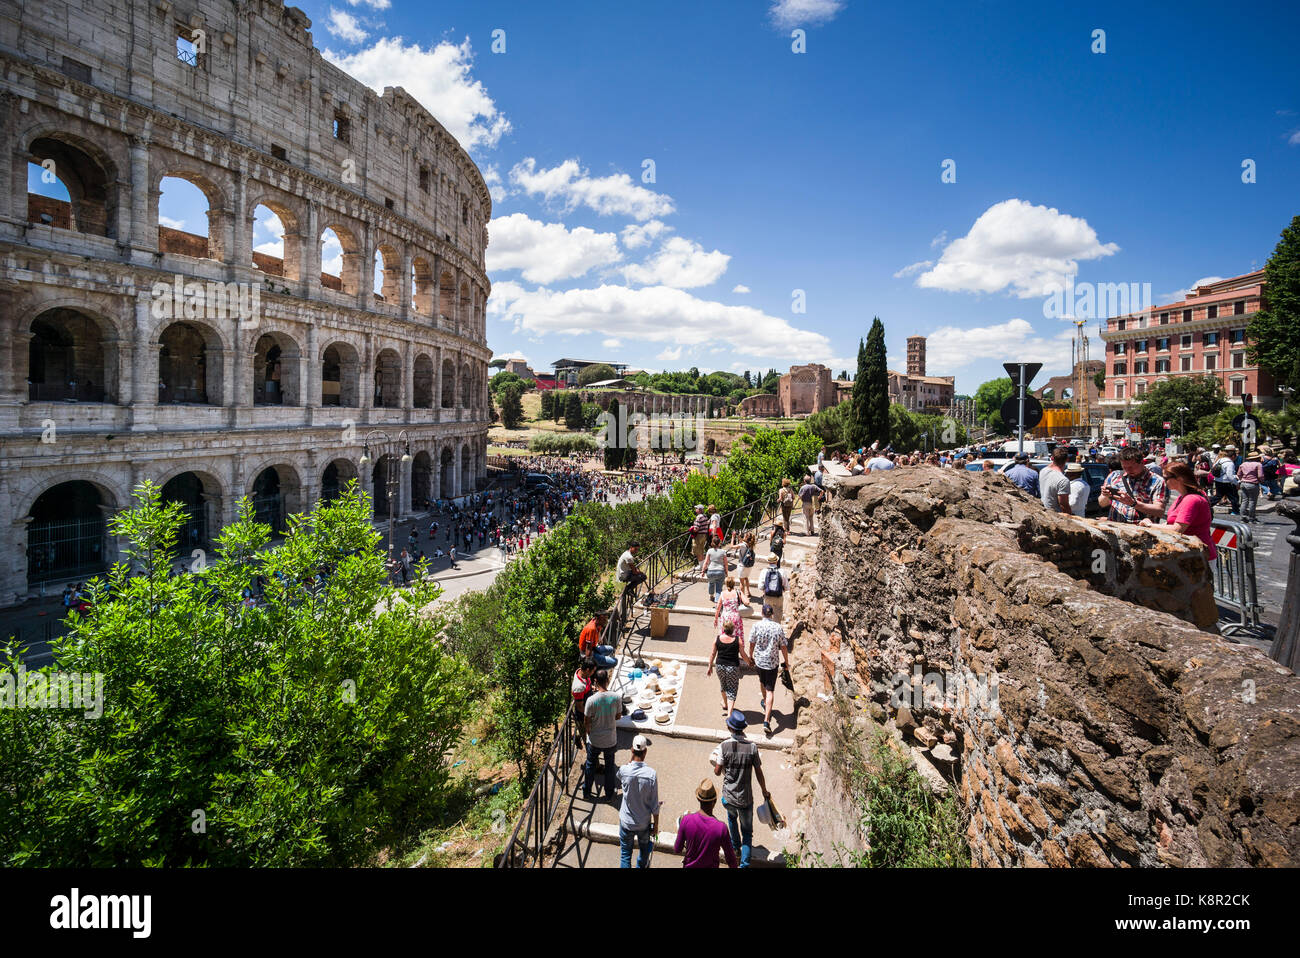 Rome. Italy. Crowds of people visiting the Colosseum. - Stock Image